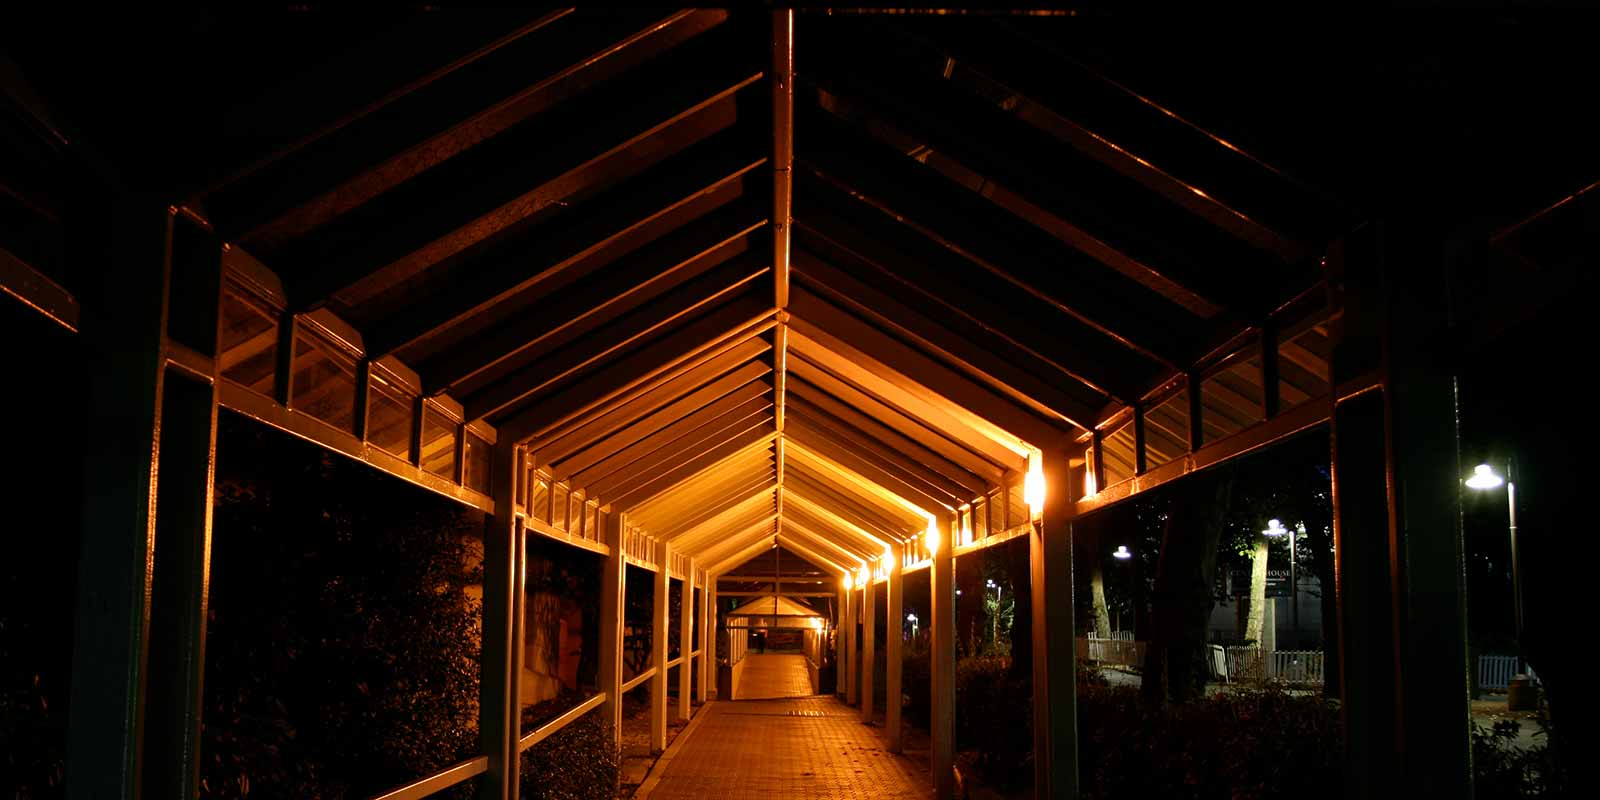 Covered walkway at Seattle Center